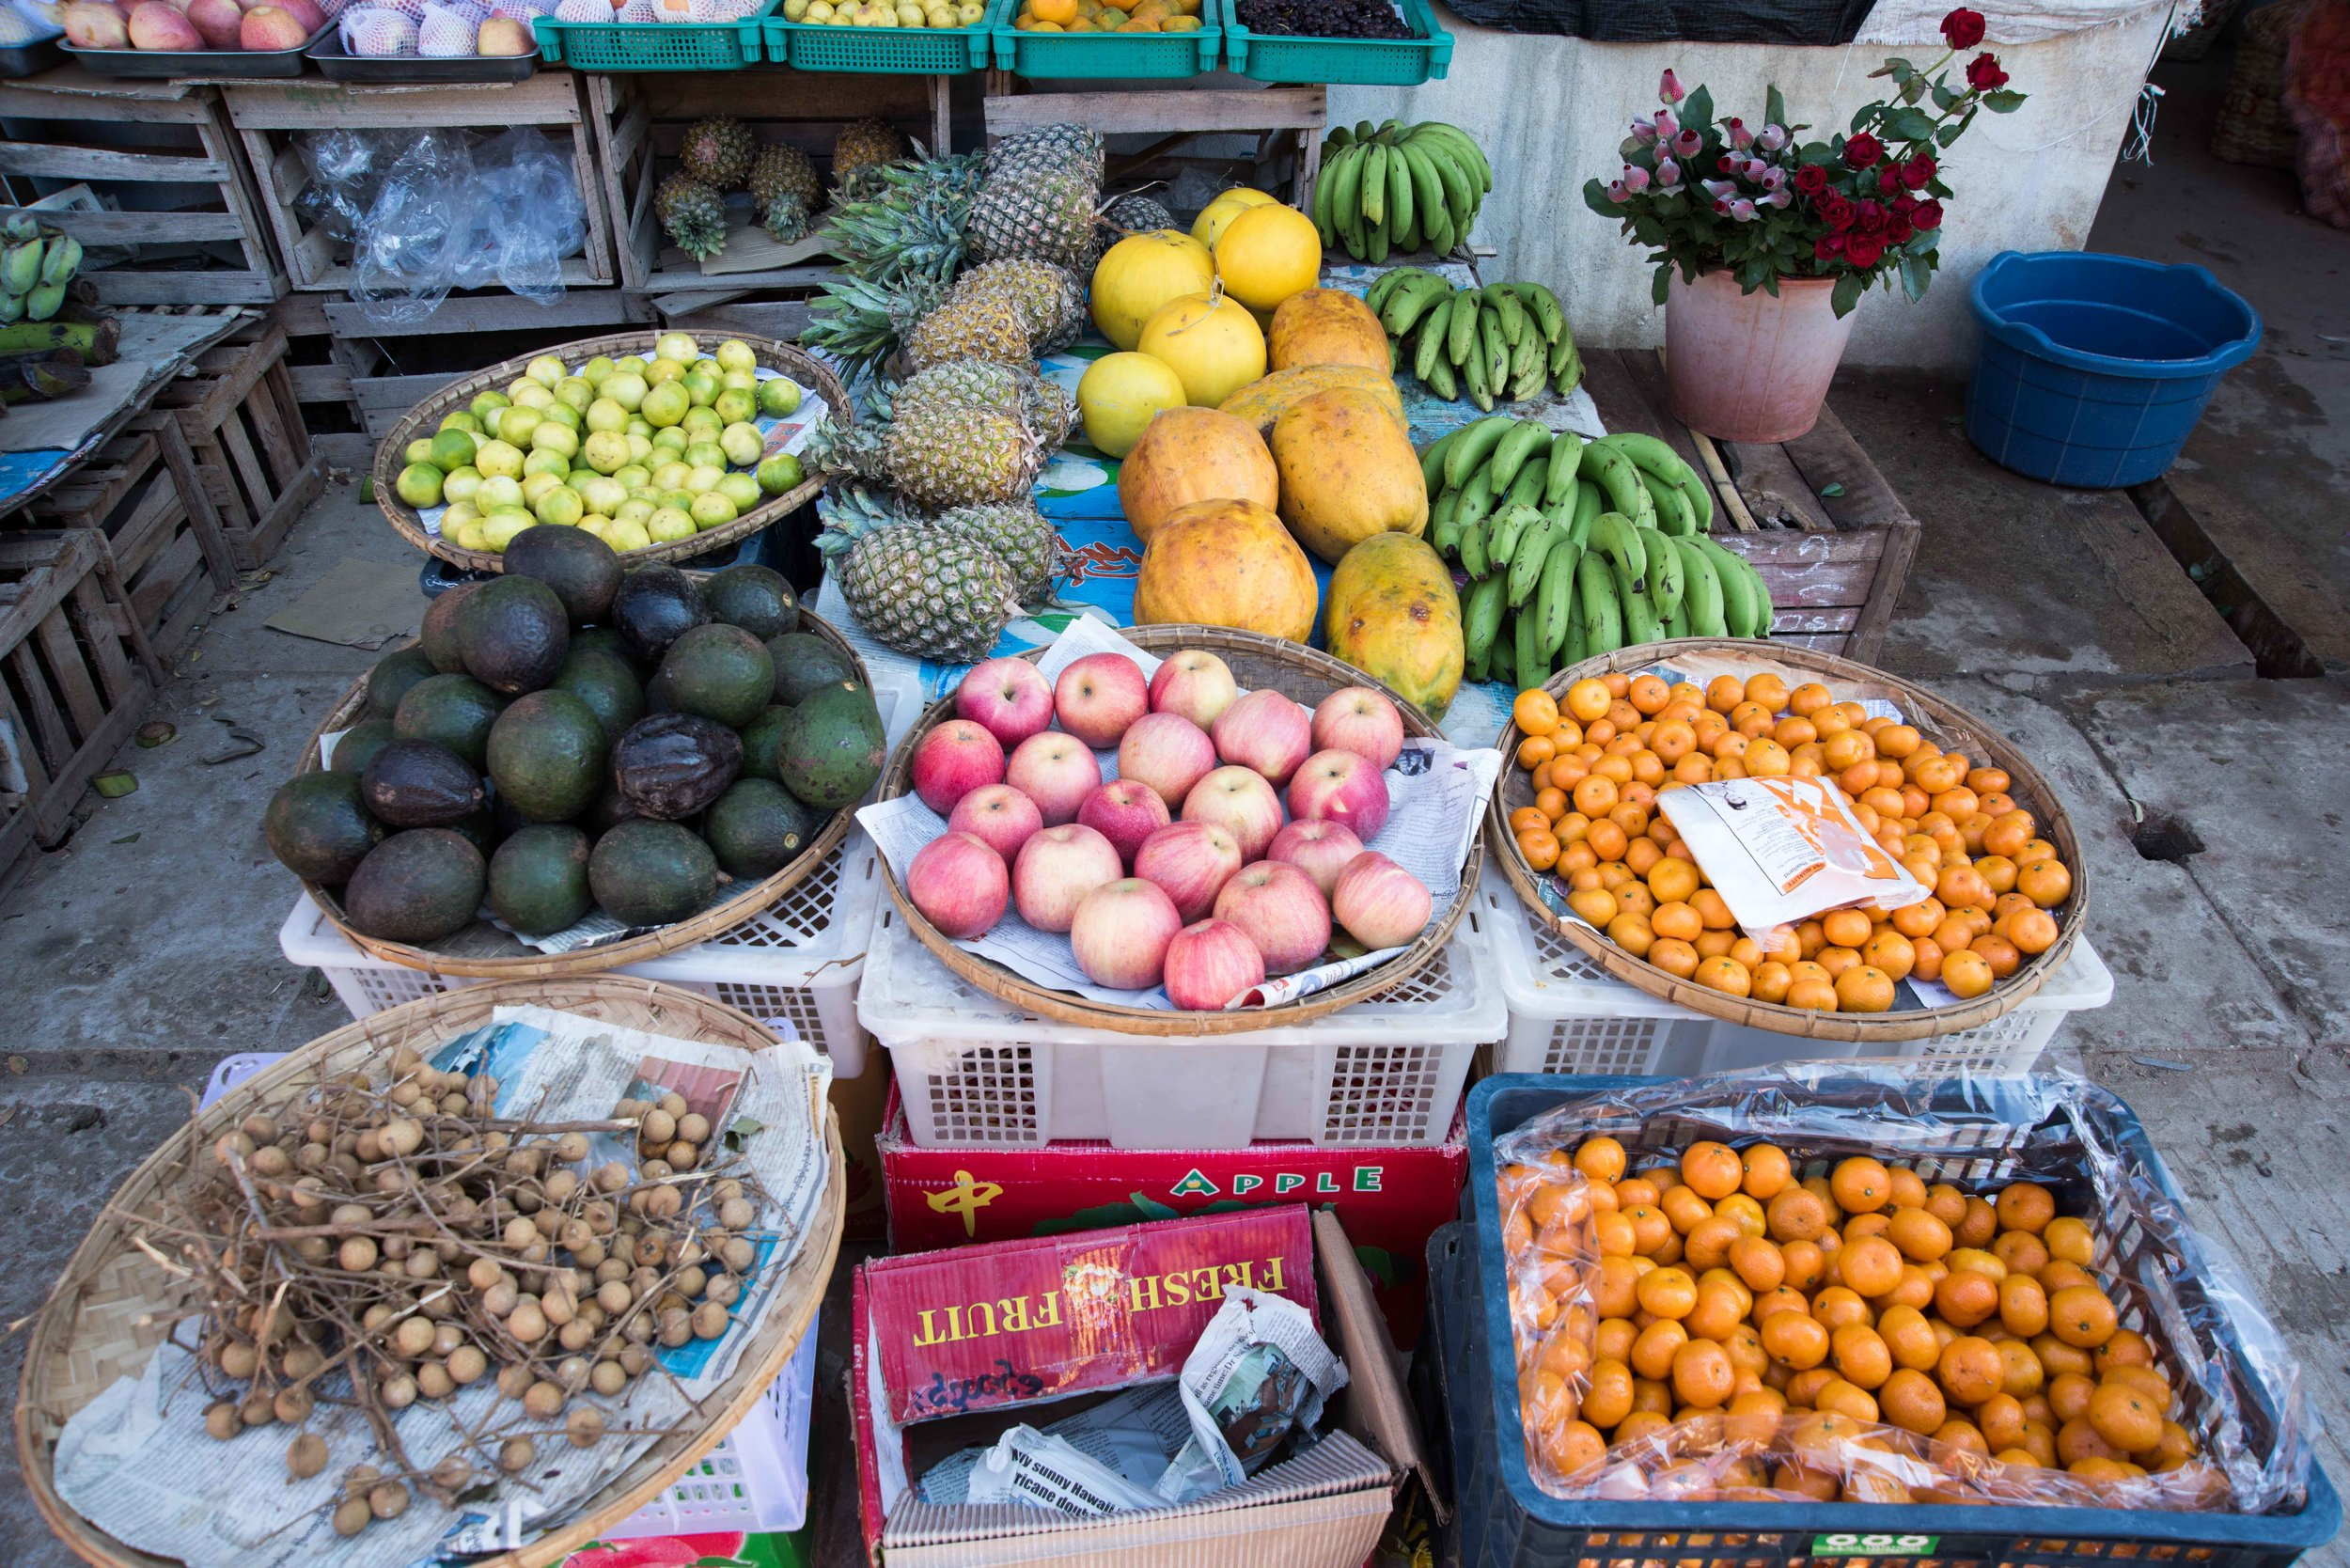 Fruit stall, Farmer's Market, New Bagan, Myanmar, 20 Nov 2017.jpg